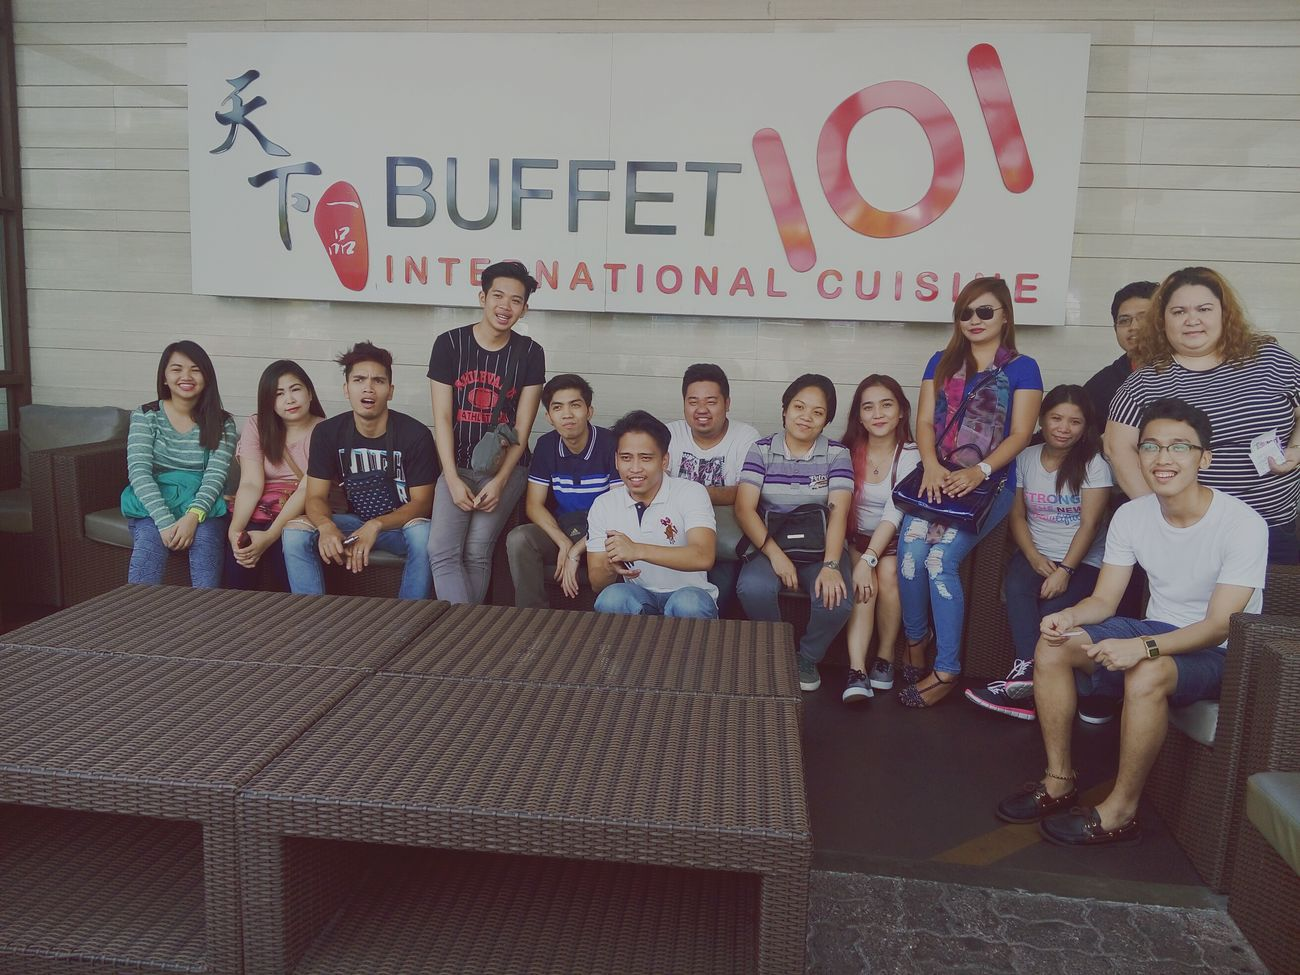 Buffet101 Internationalcuisine Team Lunch Bosses Avp Asians Taking Photos Hanging Out Enjoying Life